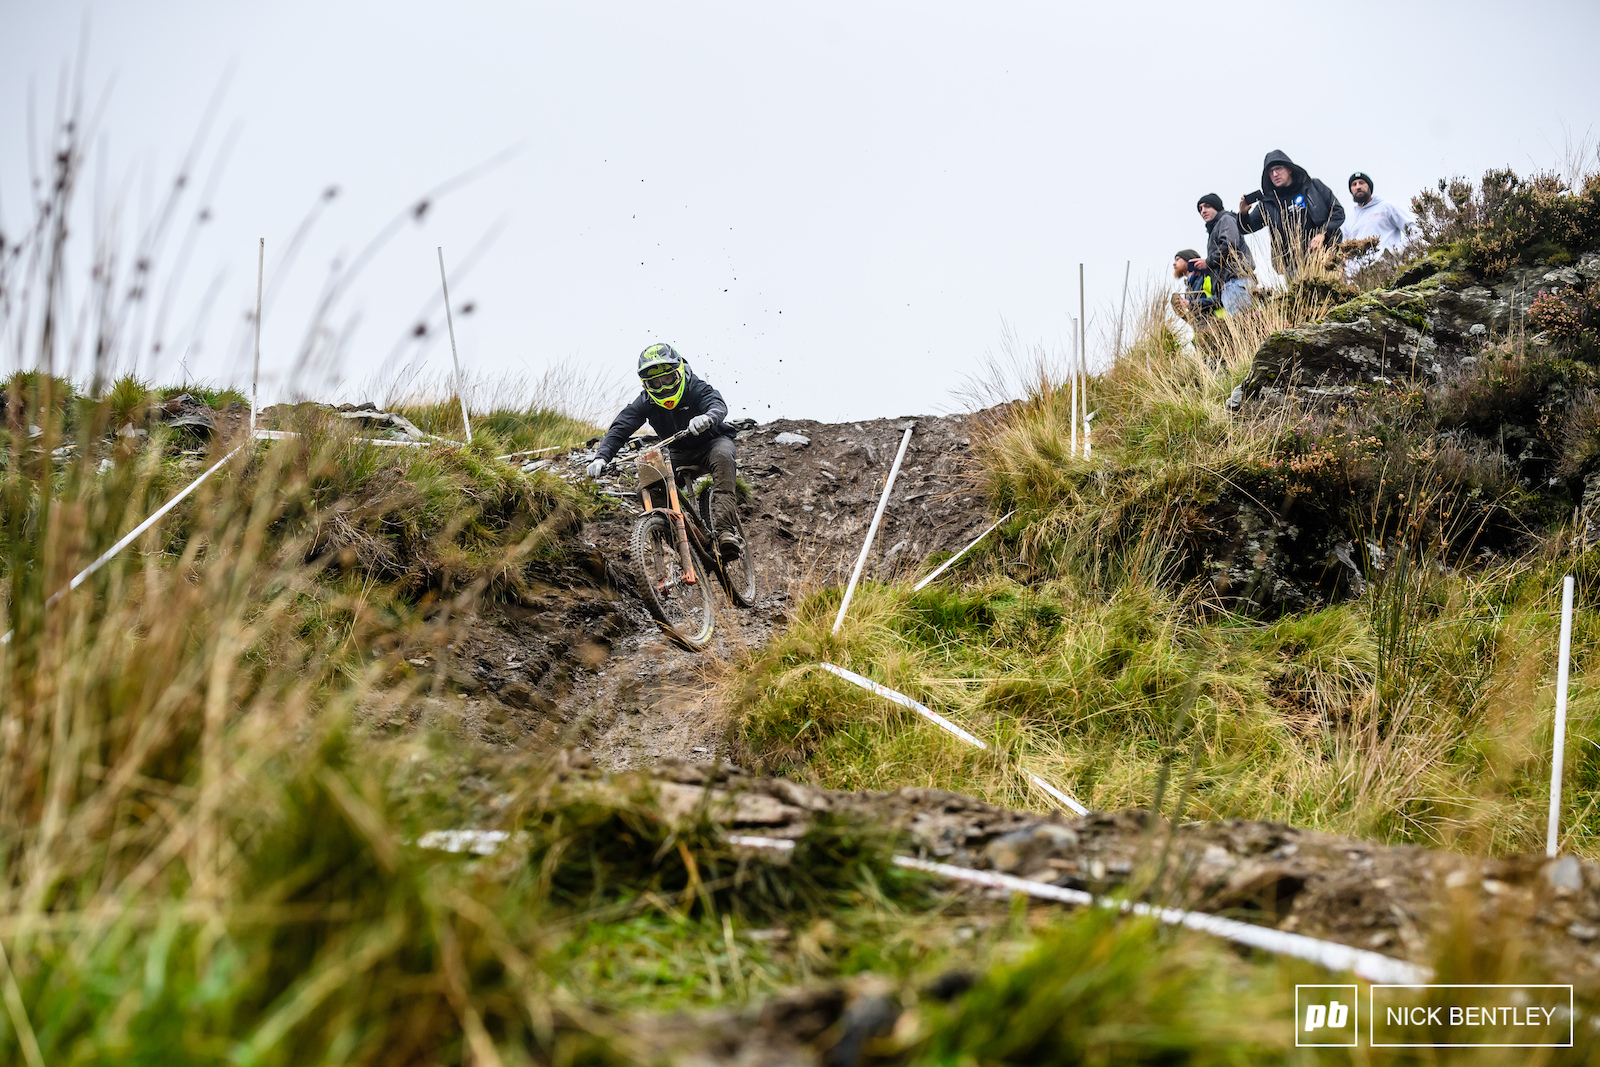 Ad Brayton making the steep chute that most mere mortals found treacherous look easy